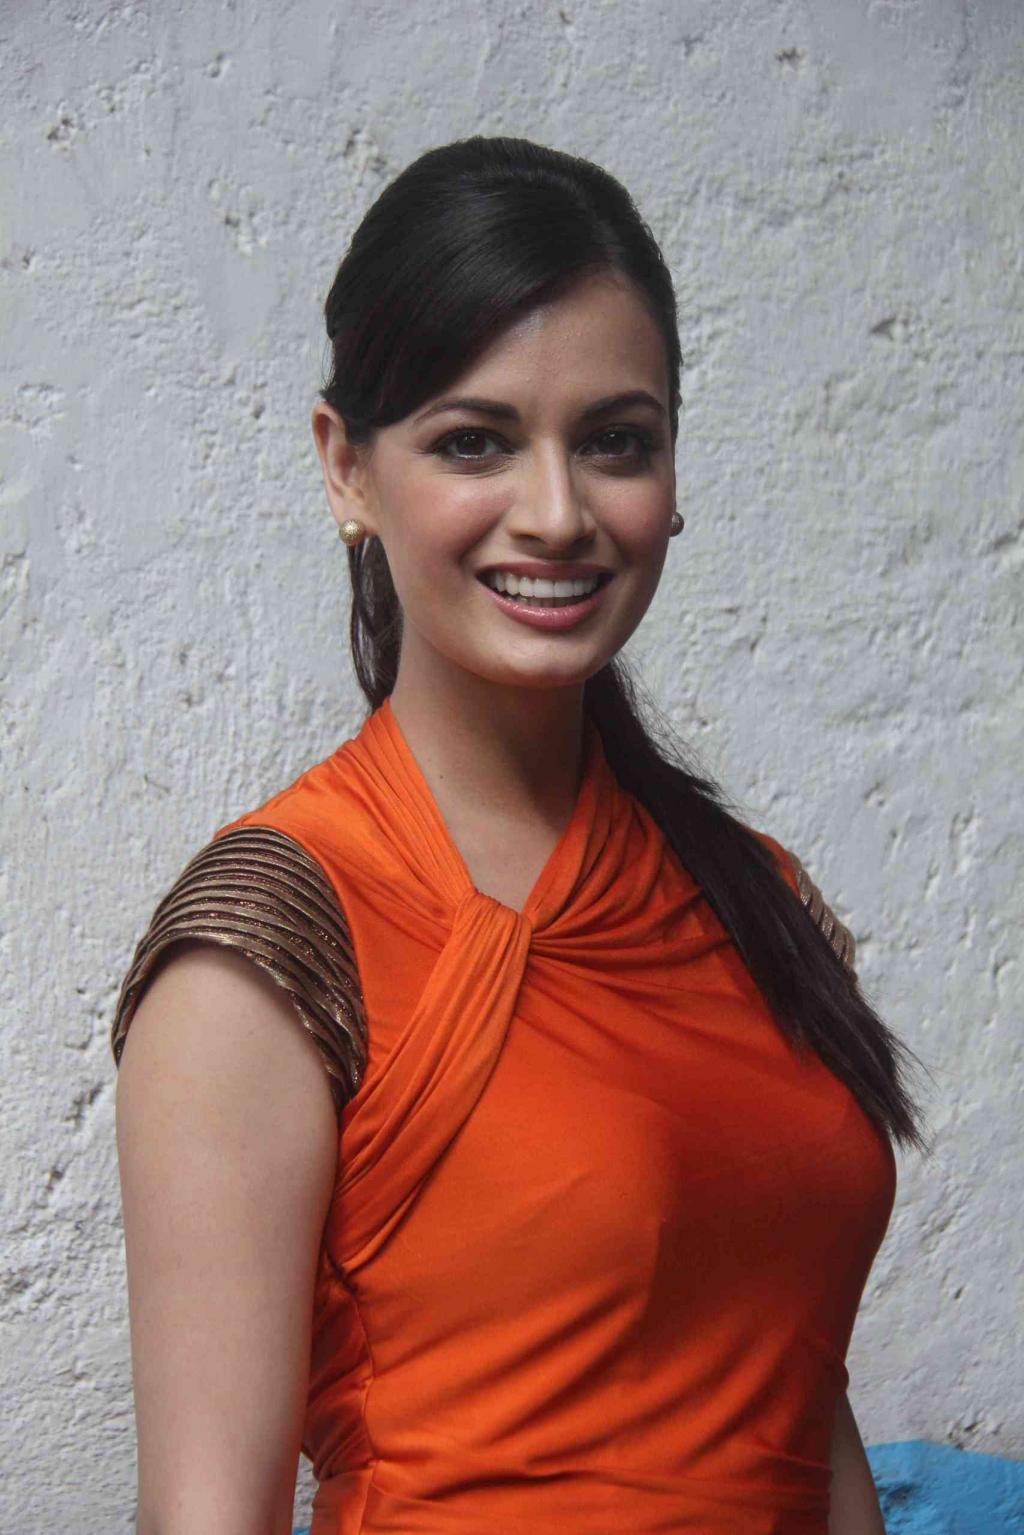 Dia Mirza - Dia Mirza Photo (30372828) - Fanpop